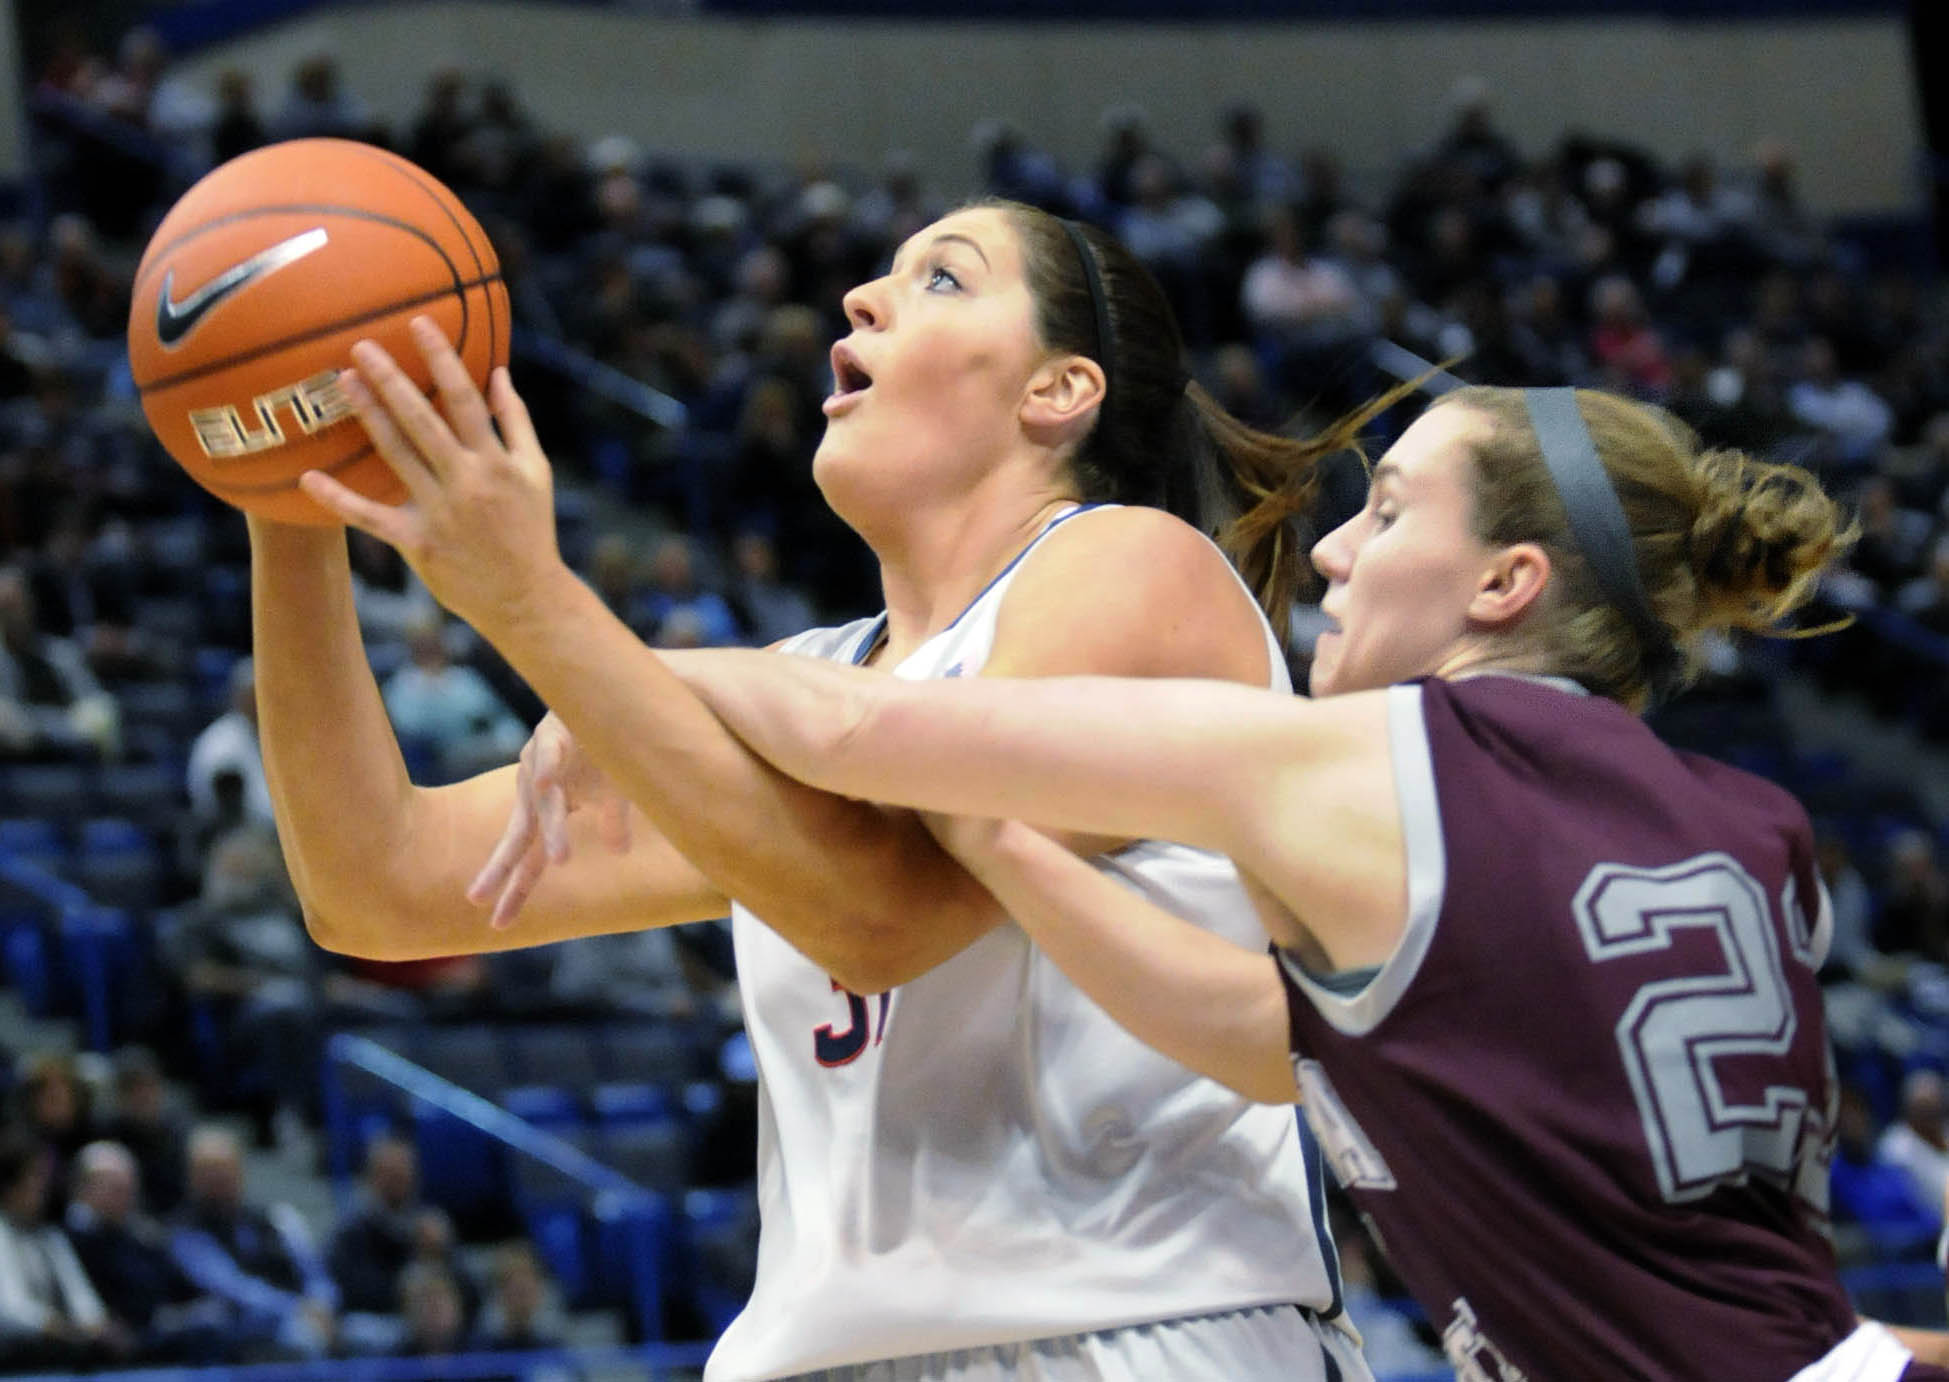 HARTFORD 11/05/13 UConn's Stefanie Dolson (31) is fouled by Philadelphia's Monica Schacker (23) in the first half in an exhibition game at the XL Center in Hartford Tuesday night.  CLOE POISSON|cpoisson@courant.com